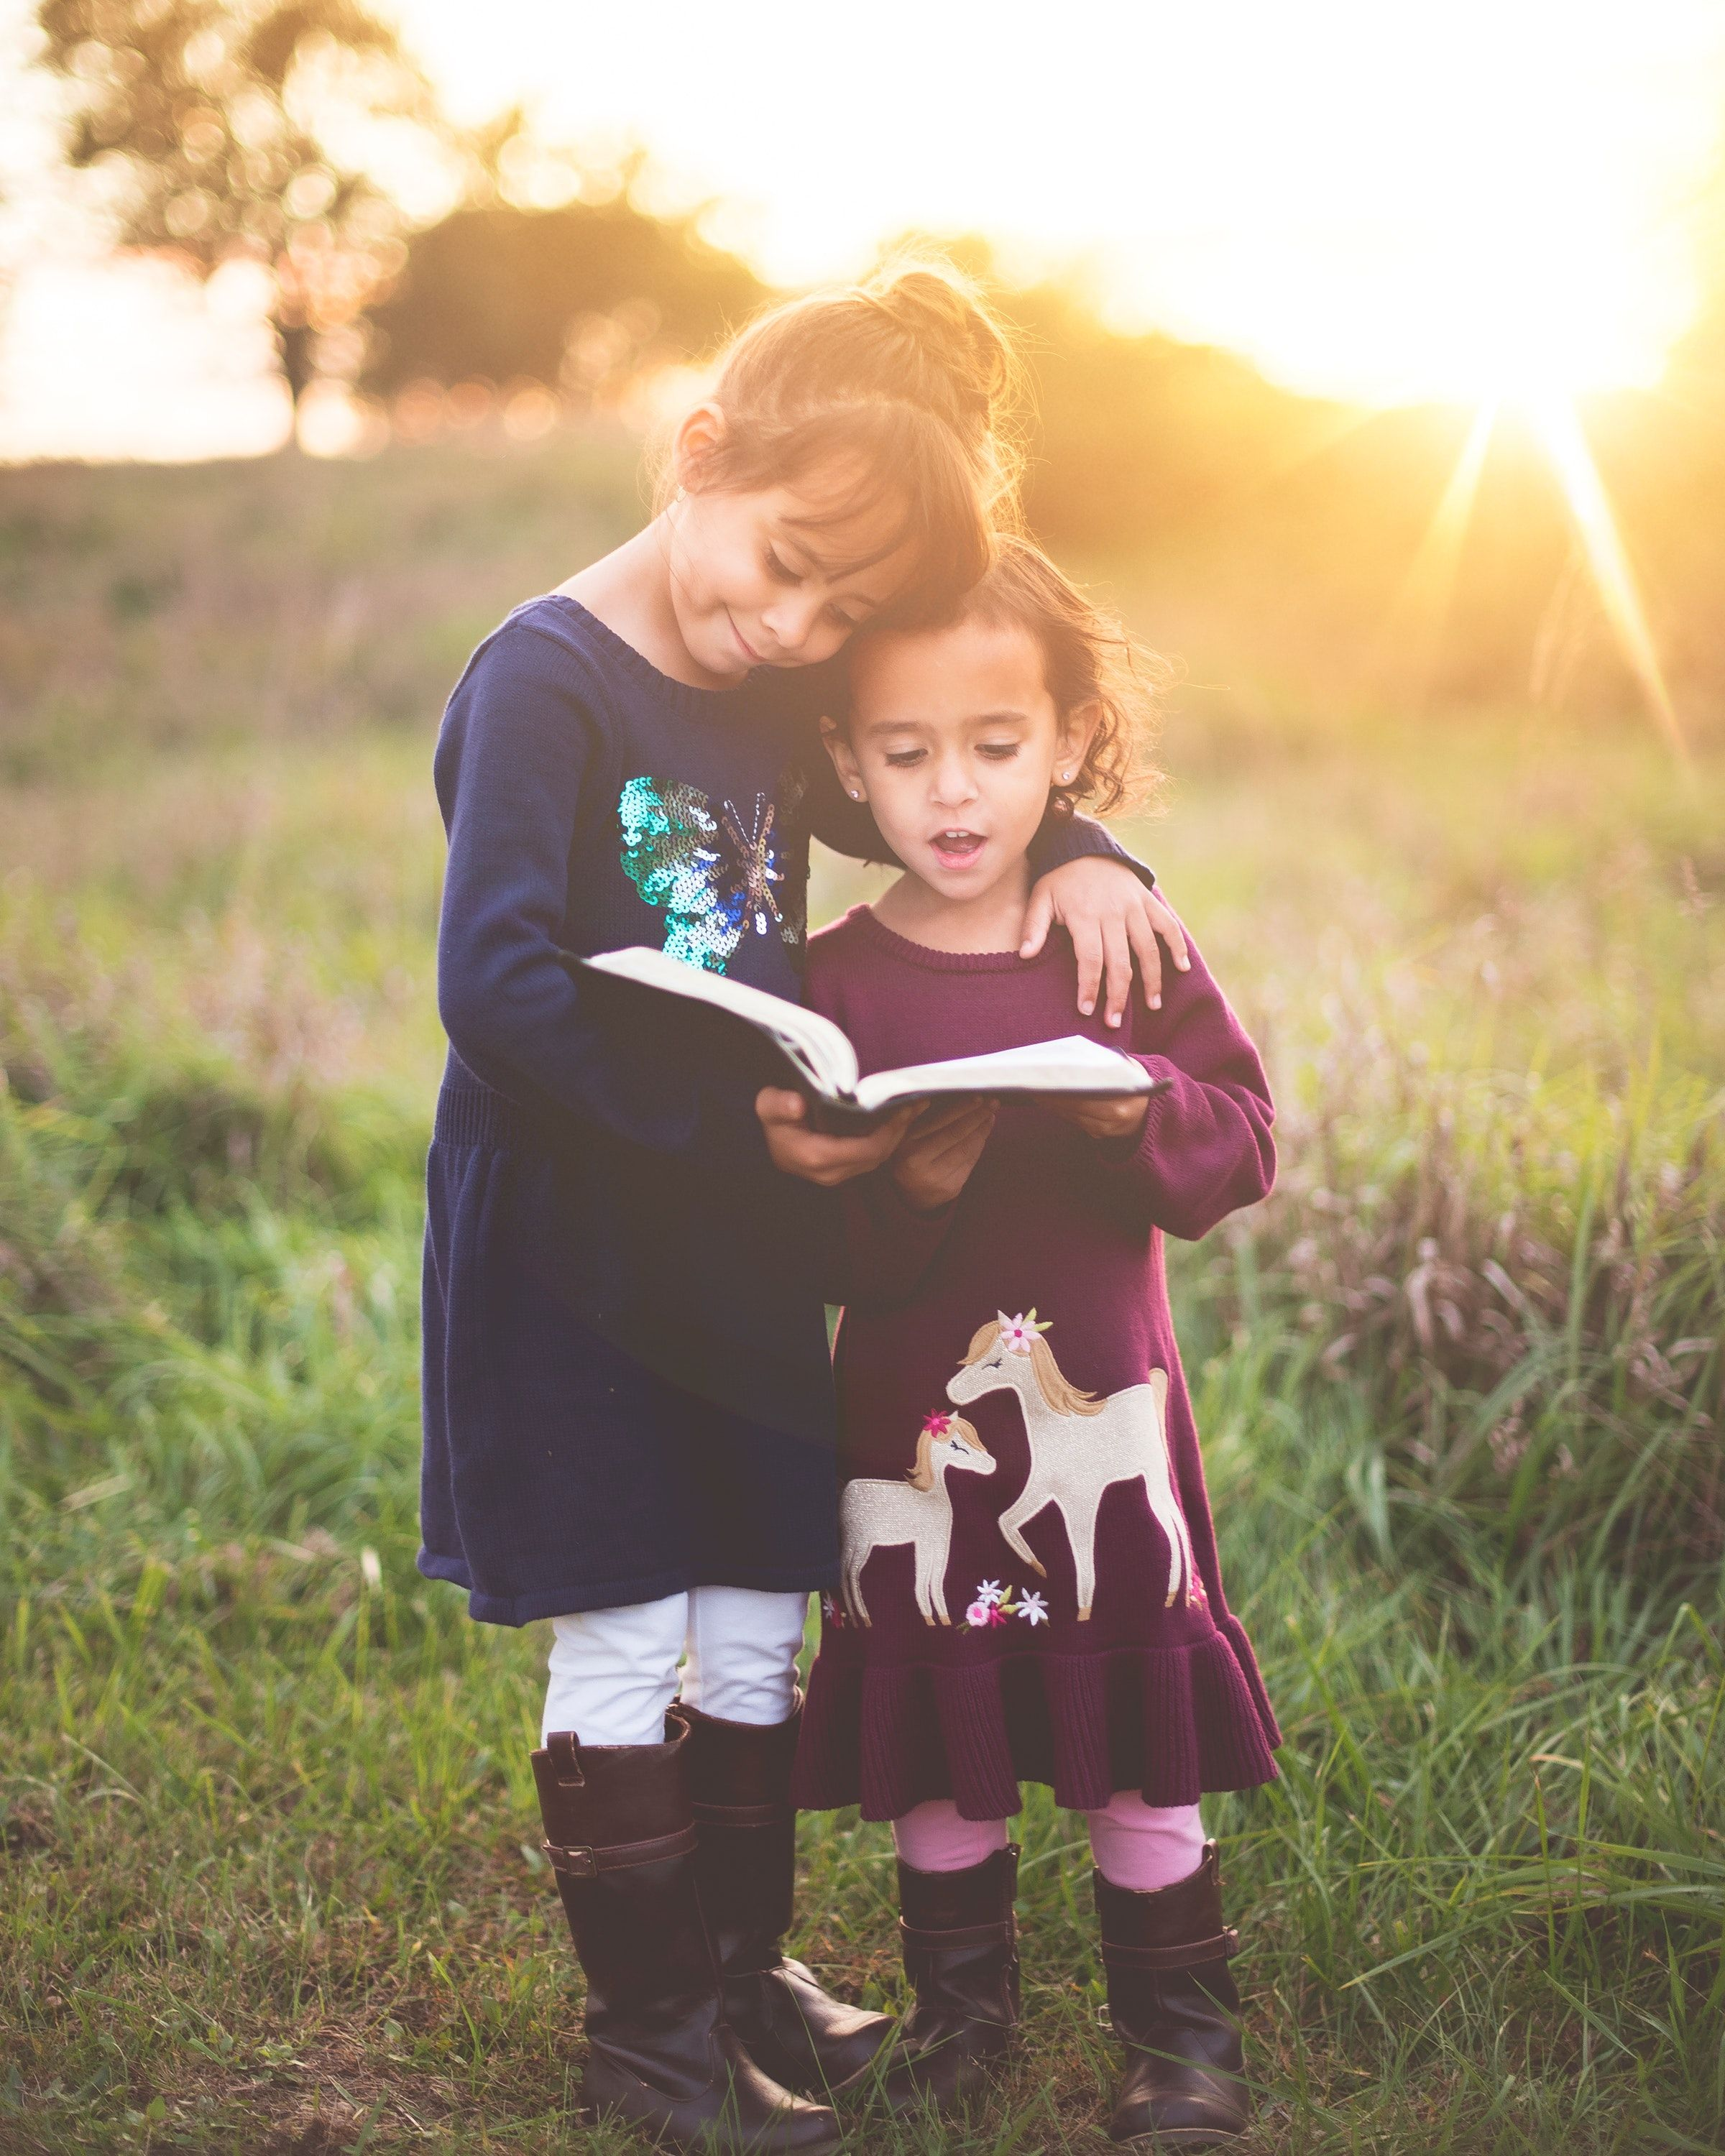 Children Kid Sibling Read Reading Book Wallpapers Hd 4k Background For Android Adoption Books Positive Discipline Teaching Kids